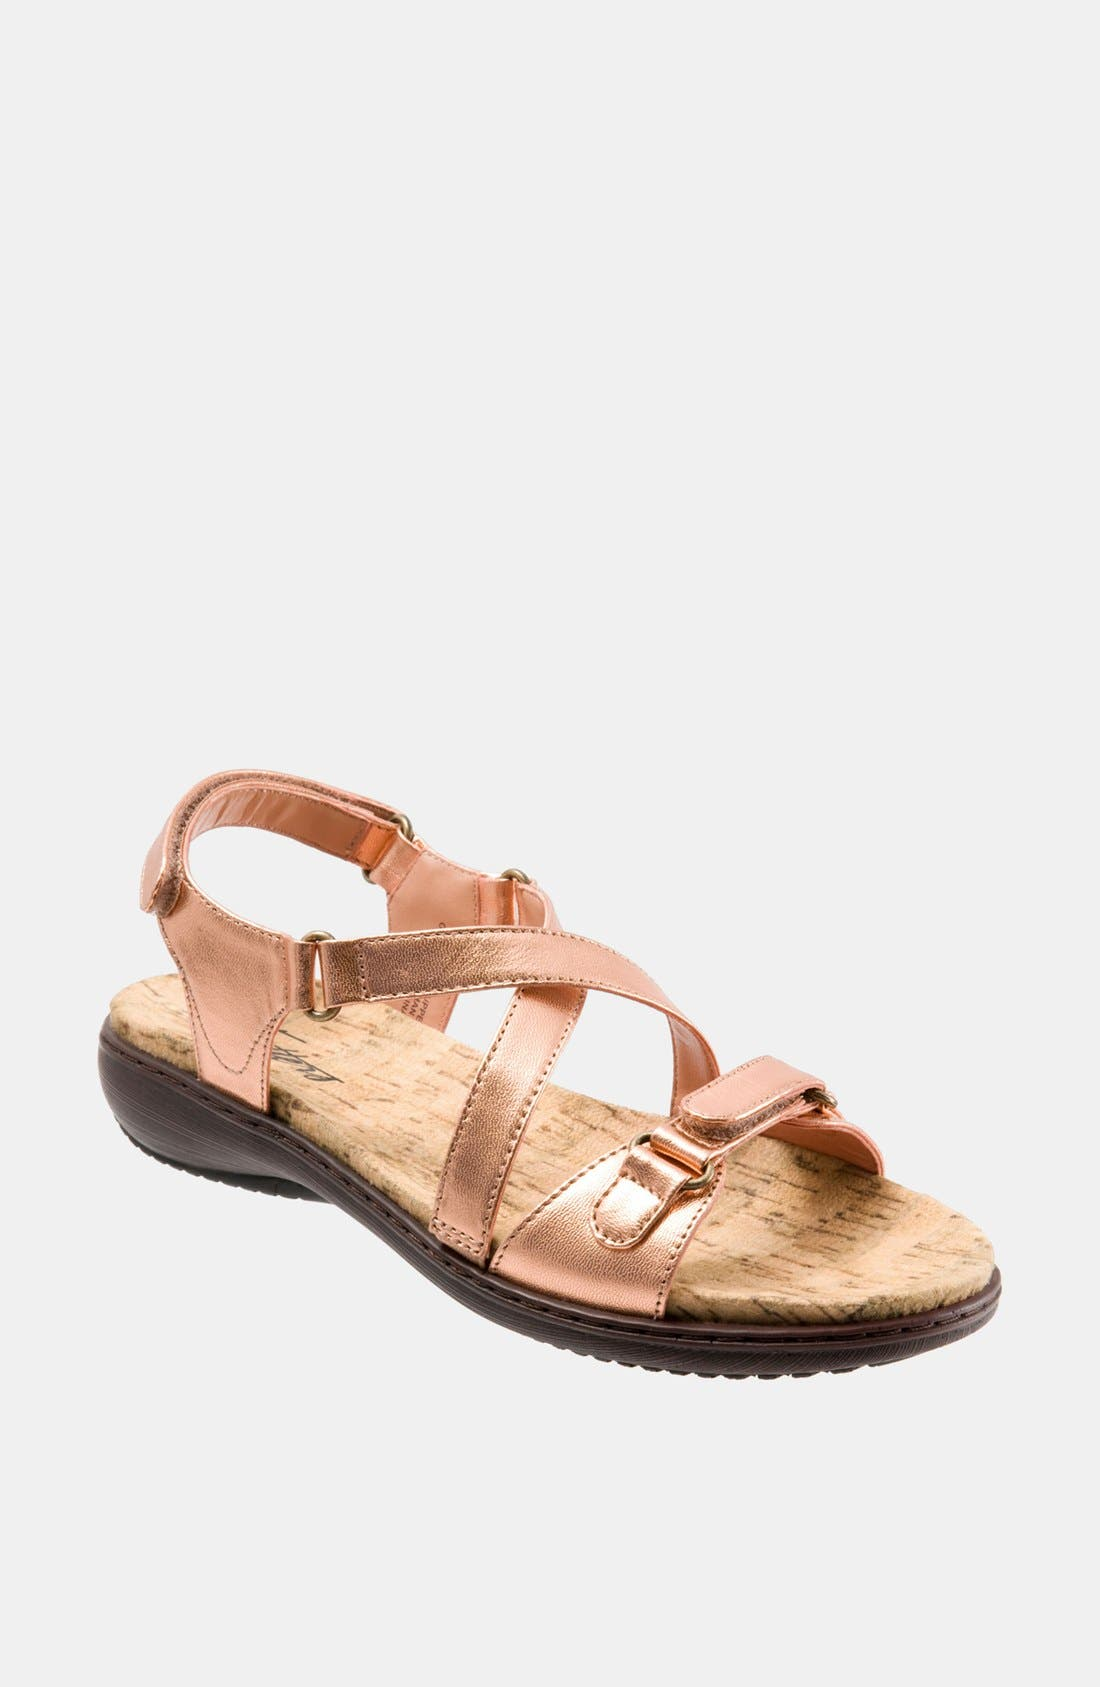 Main Image - Trotters 'Kylie' Sandal